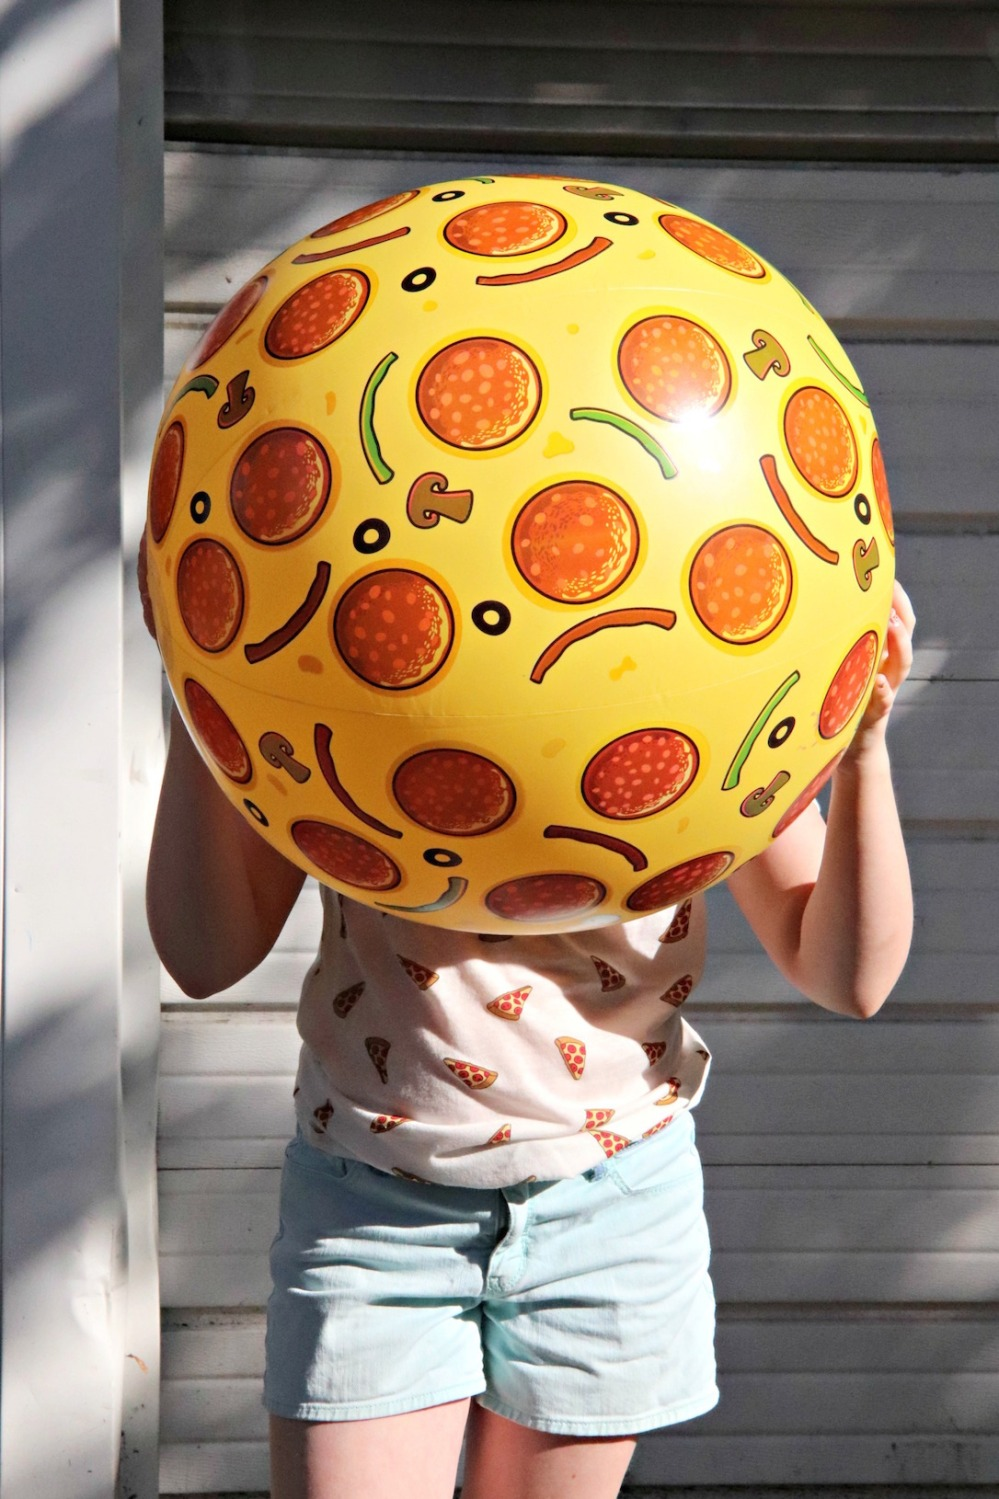 Panago Pizza pizza ball